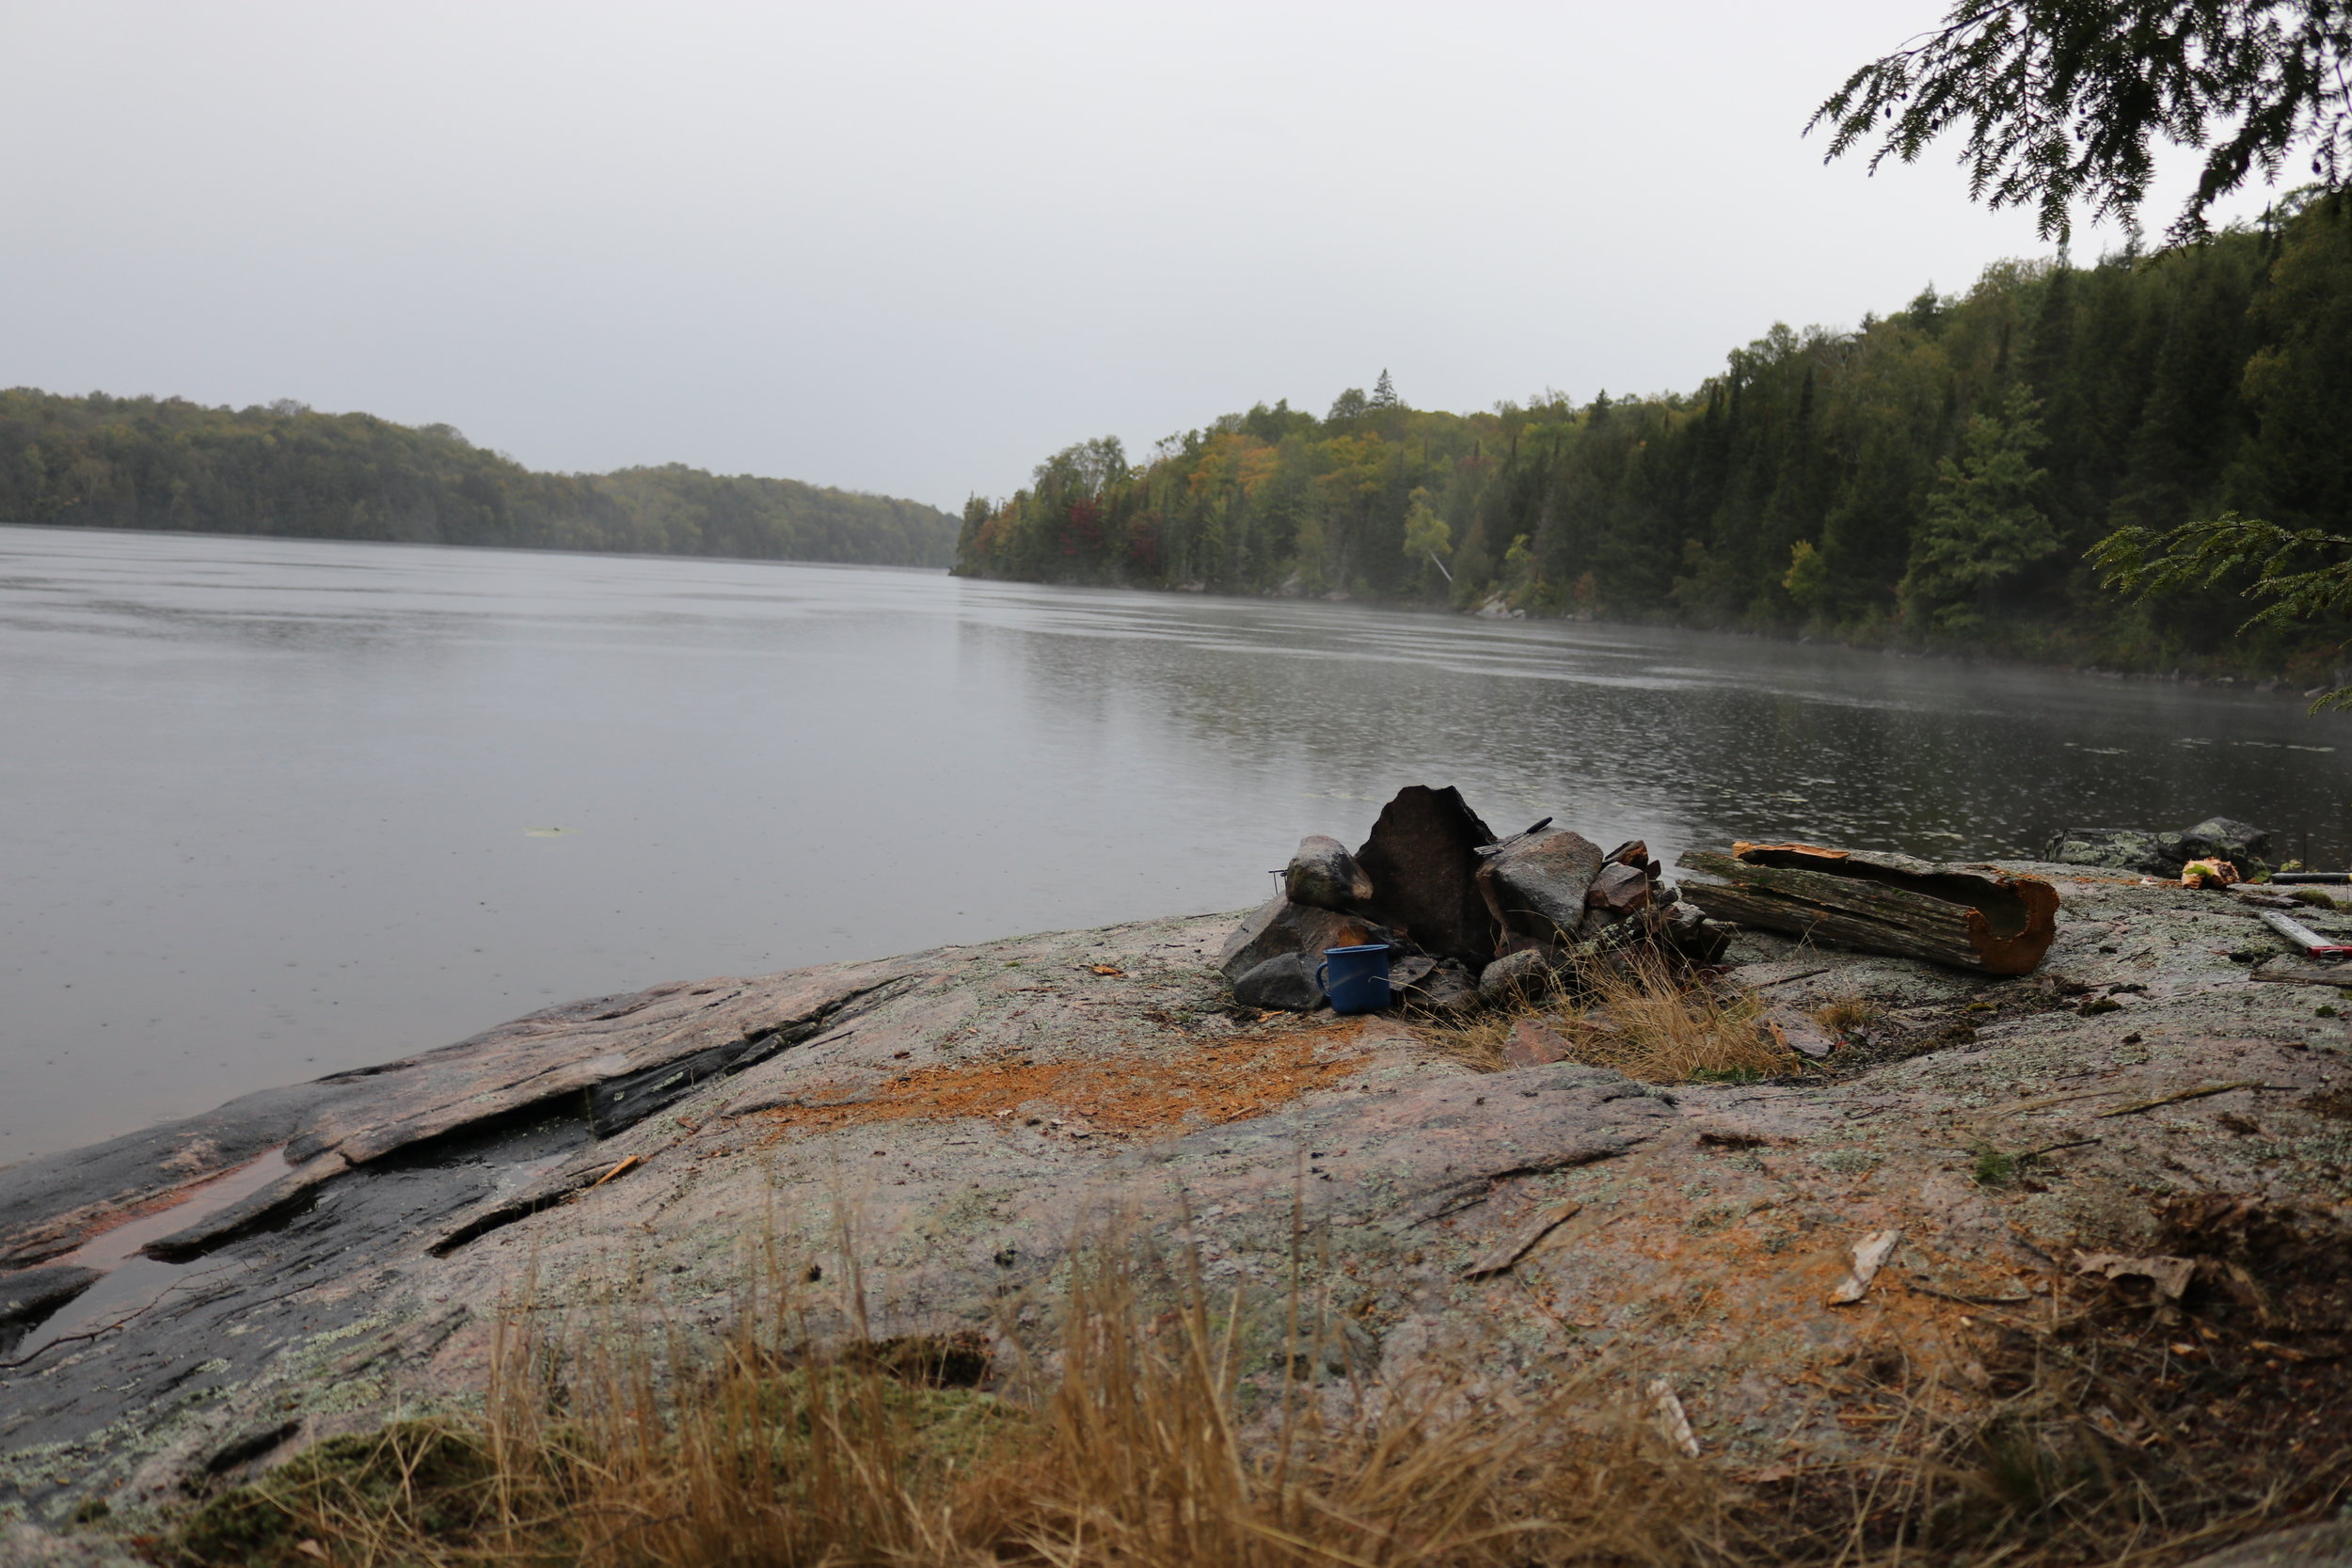 Picture 3 - Rainy Morning View on Toad Lake.JPG